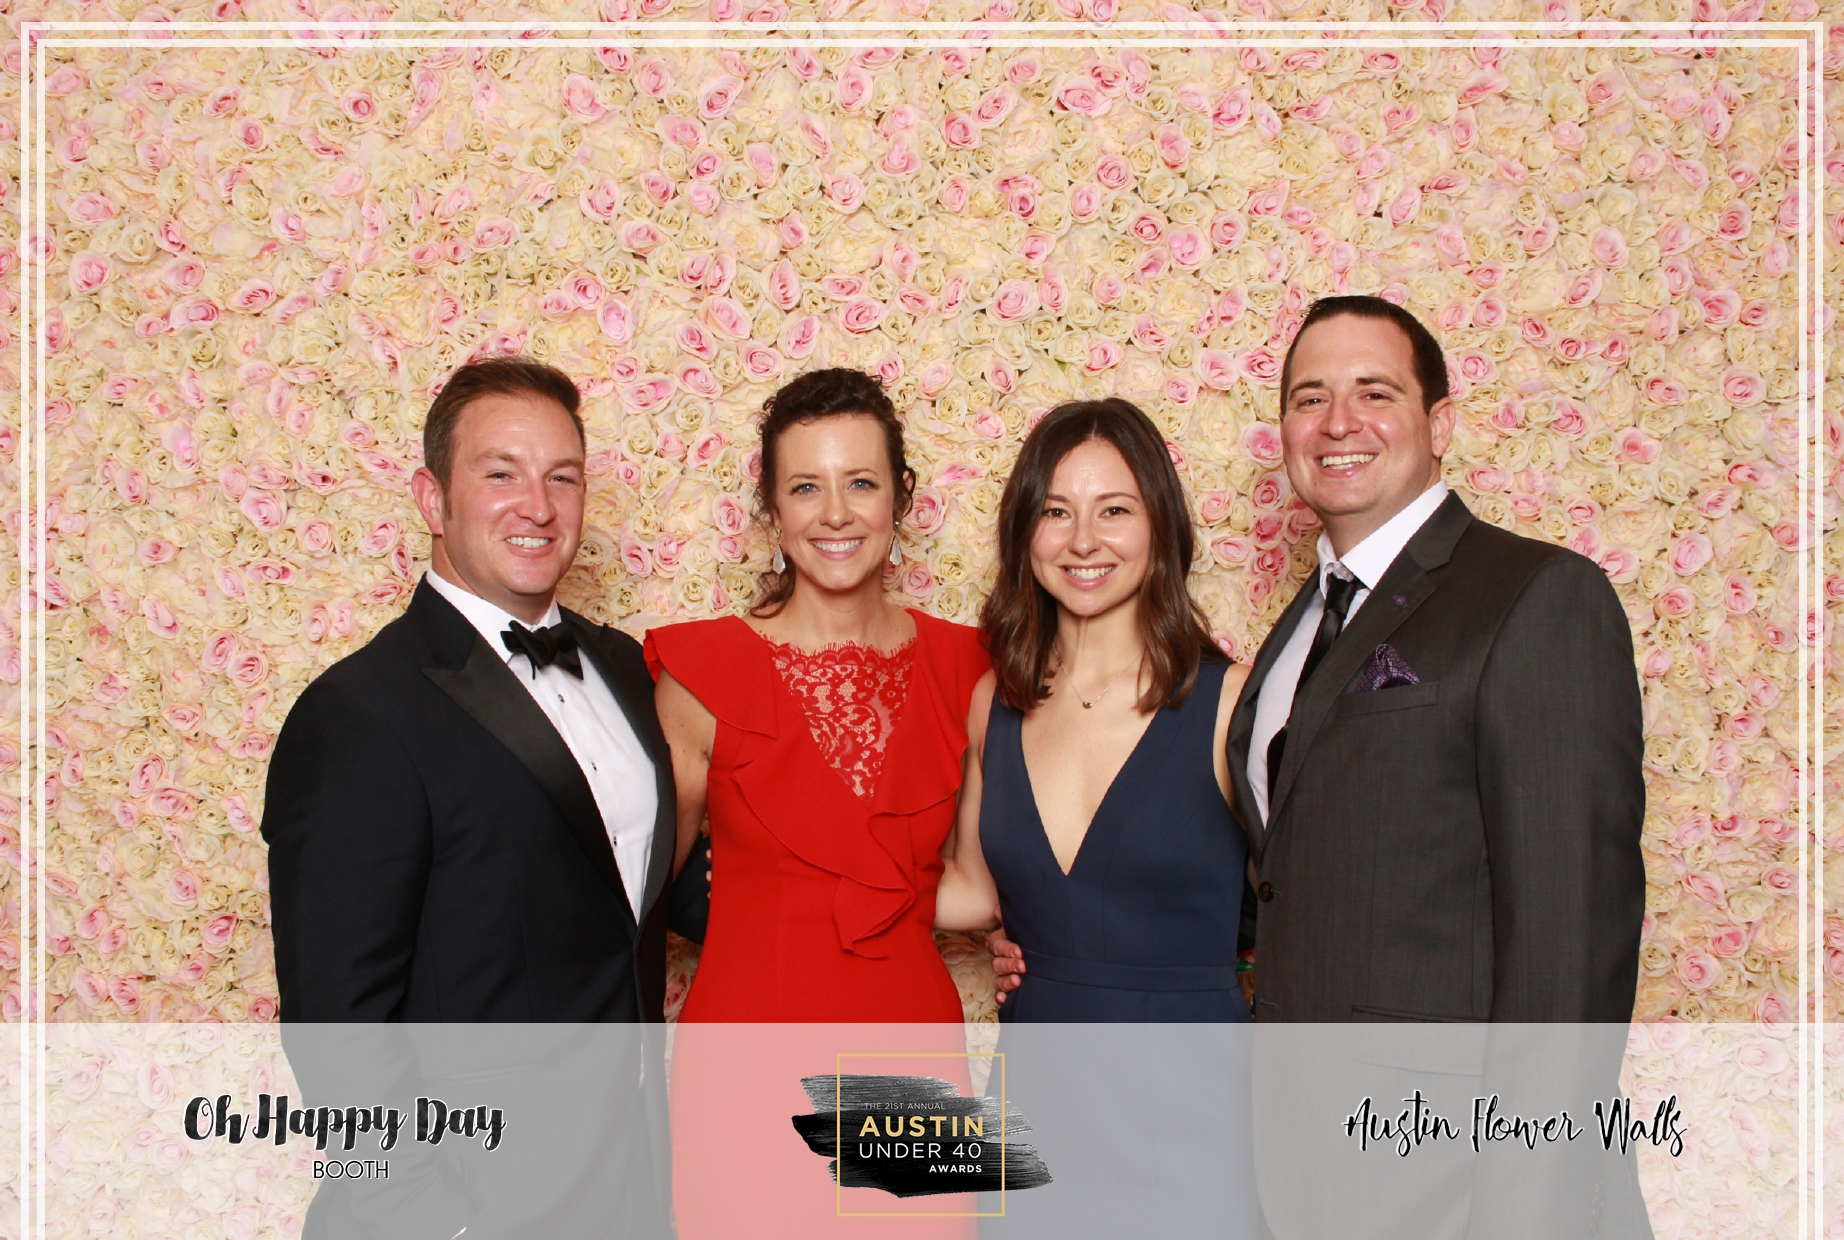 Oh Happy Day Booth - Austin Under 40-151.jpg